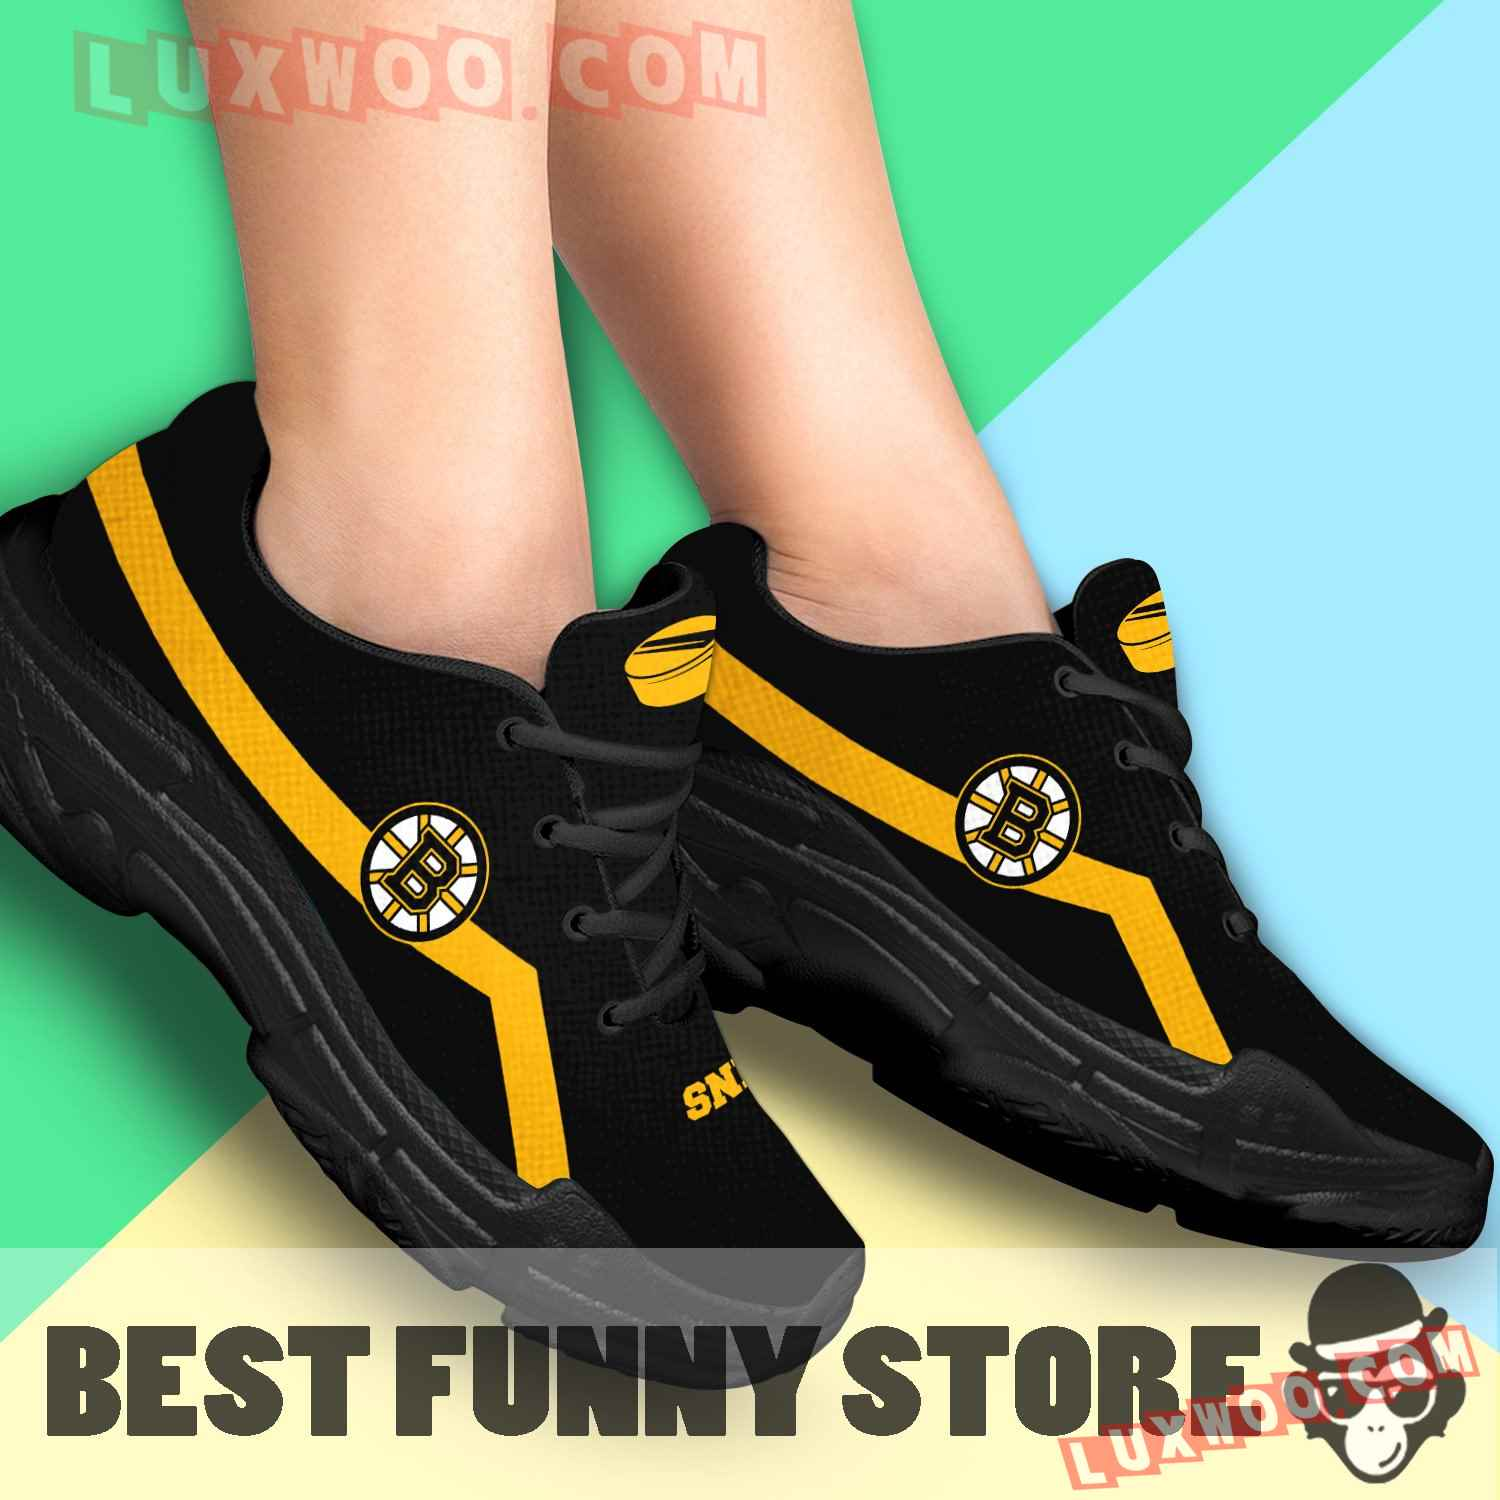 Edition Chunky Sneakers With Line Boston Bruins Shoes